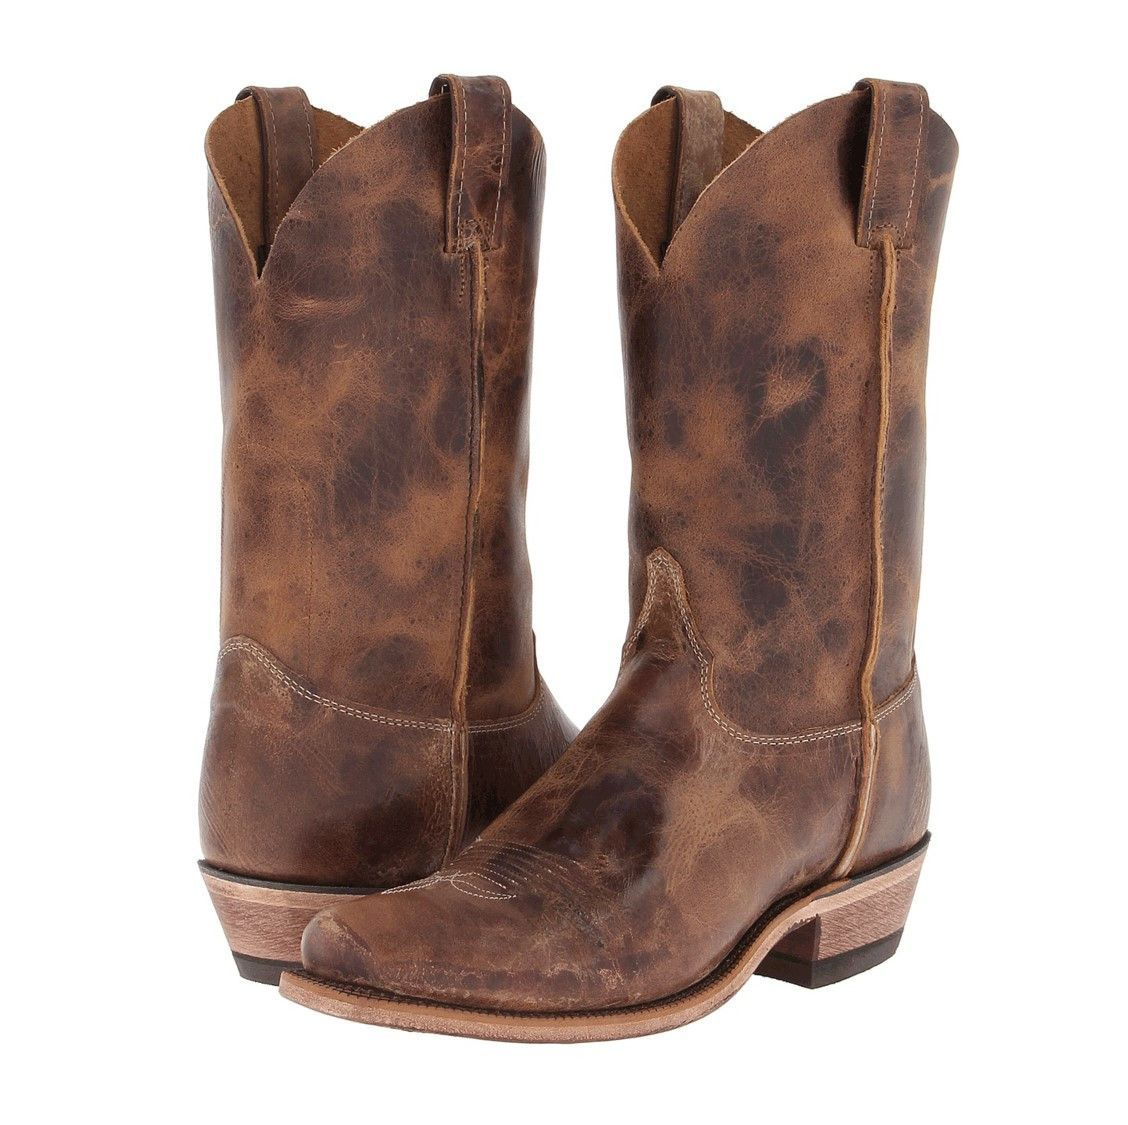 Tan Road Men's Western Boot by Justin | Western boots for